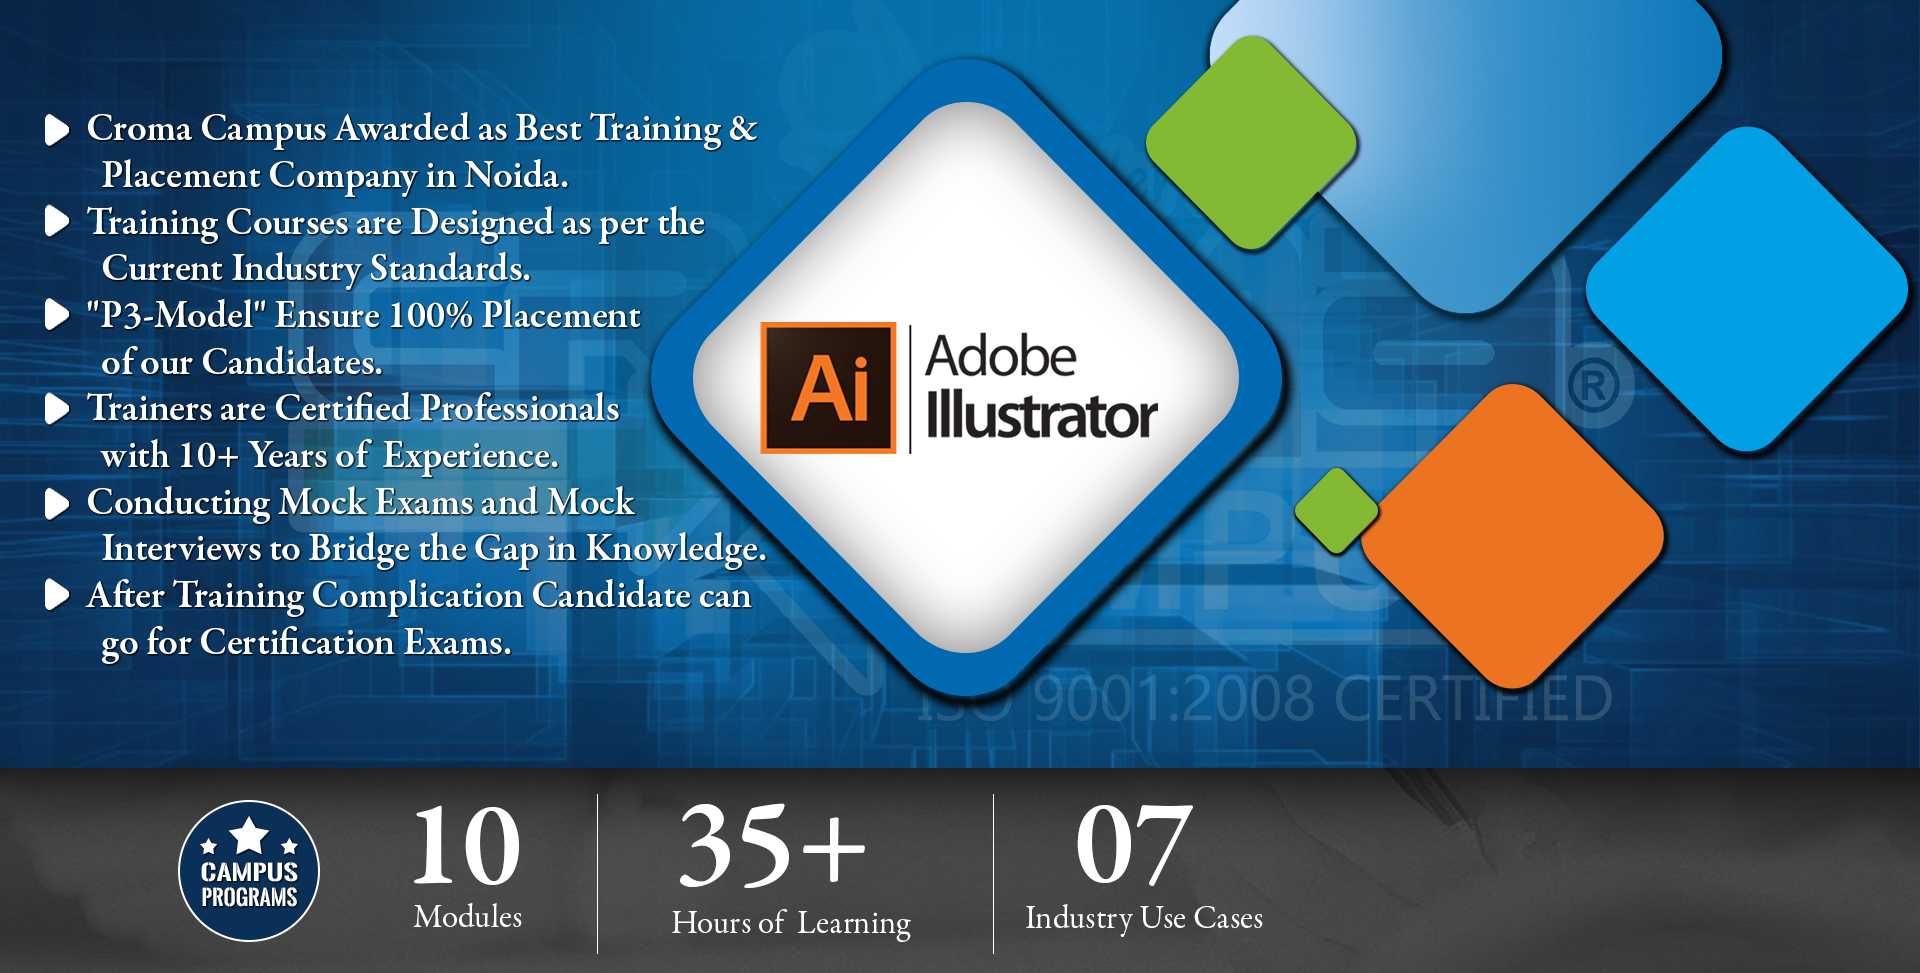 Adobe Illustrator Training in Gurgaon